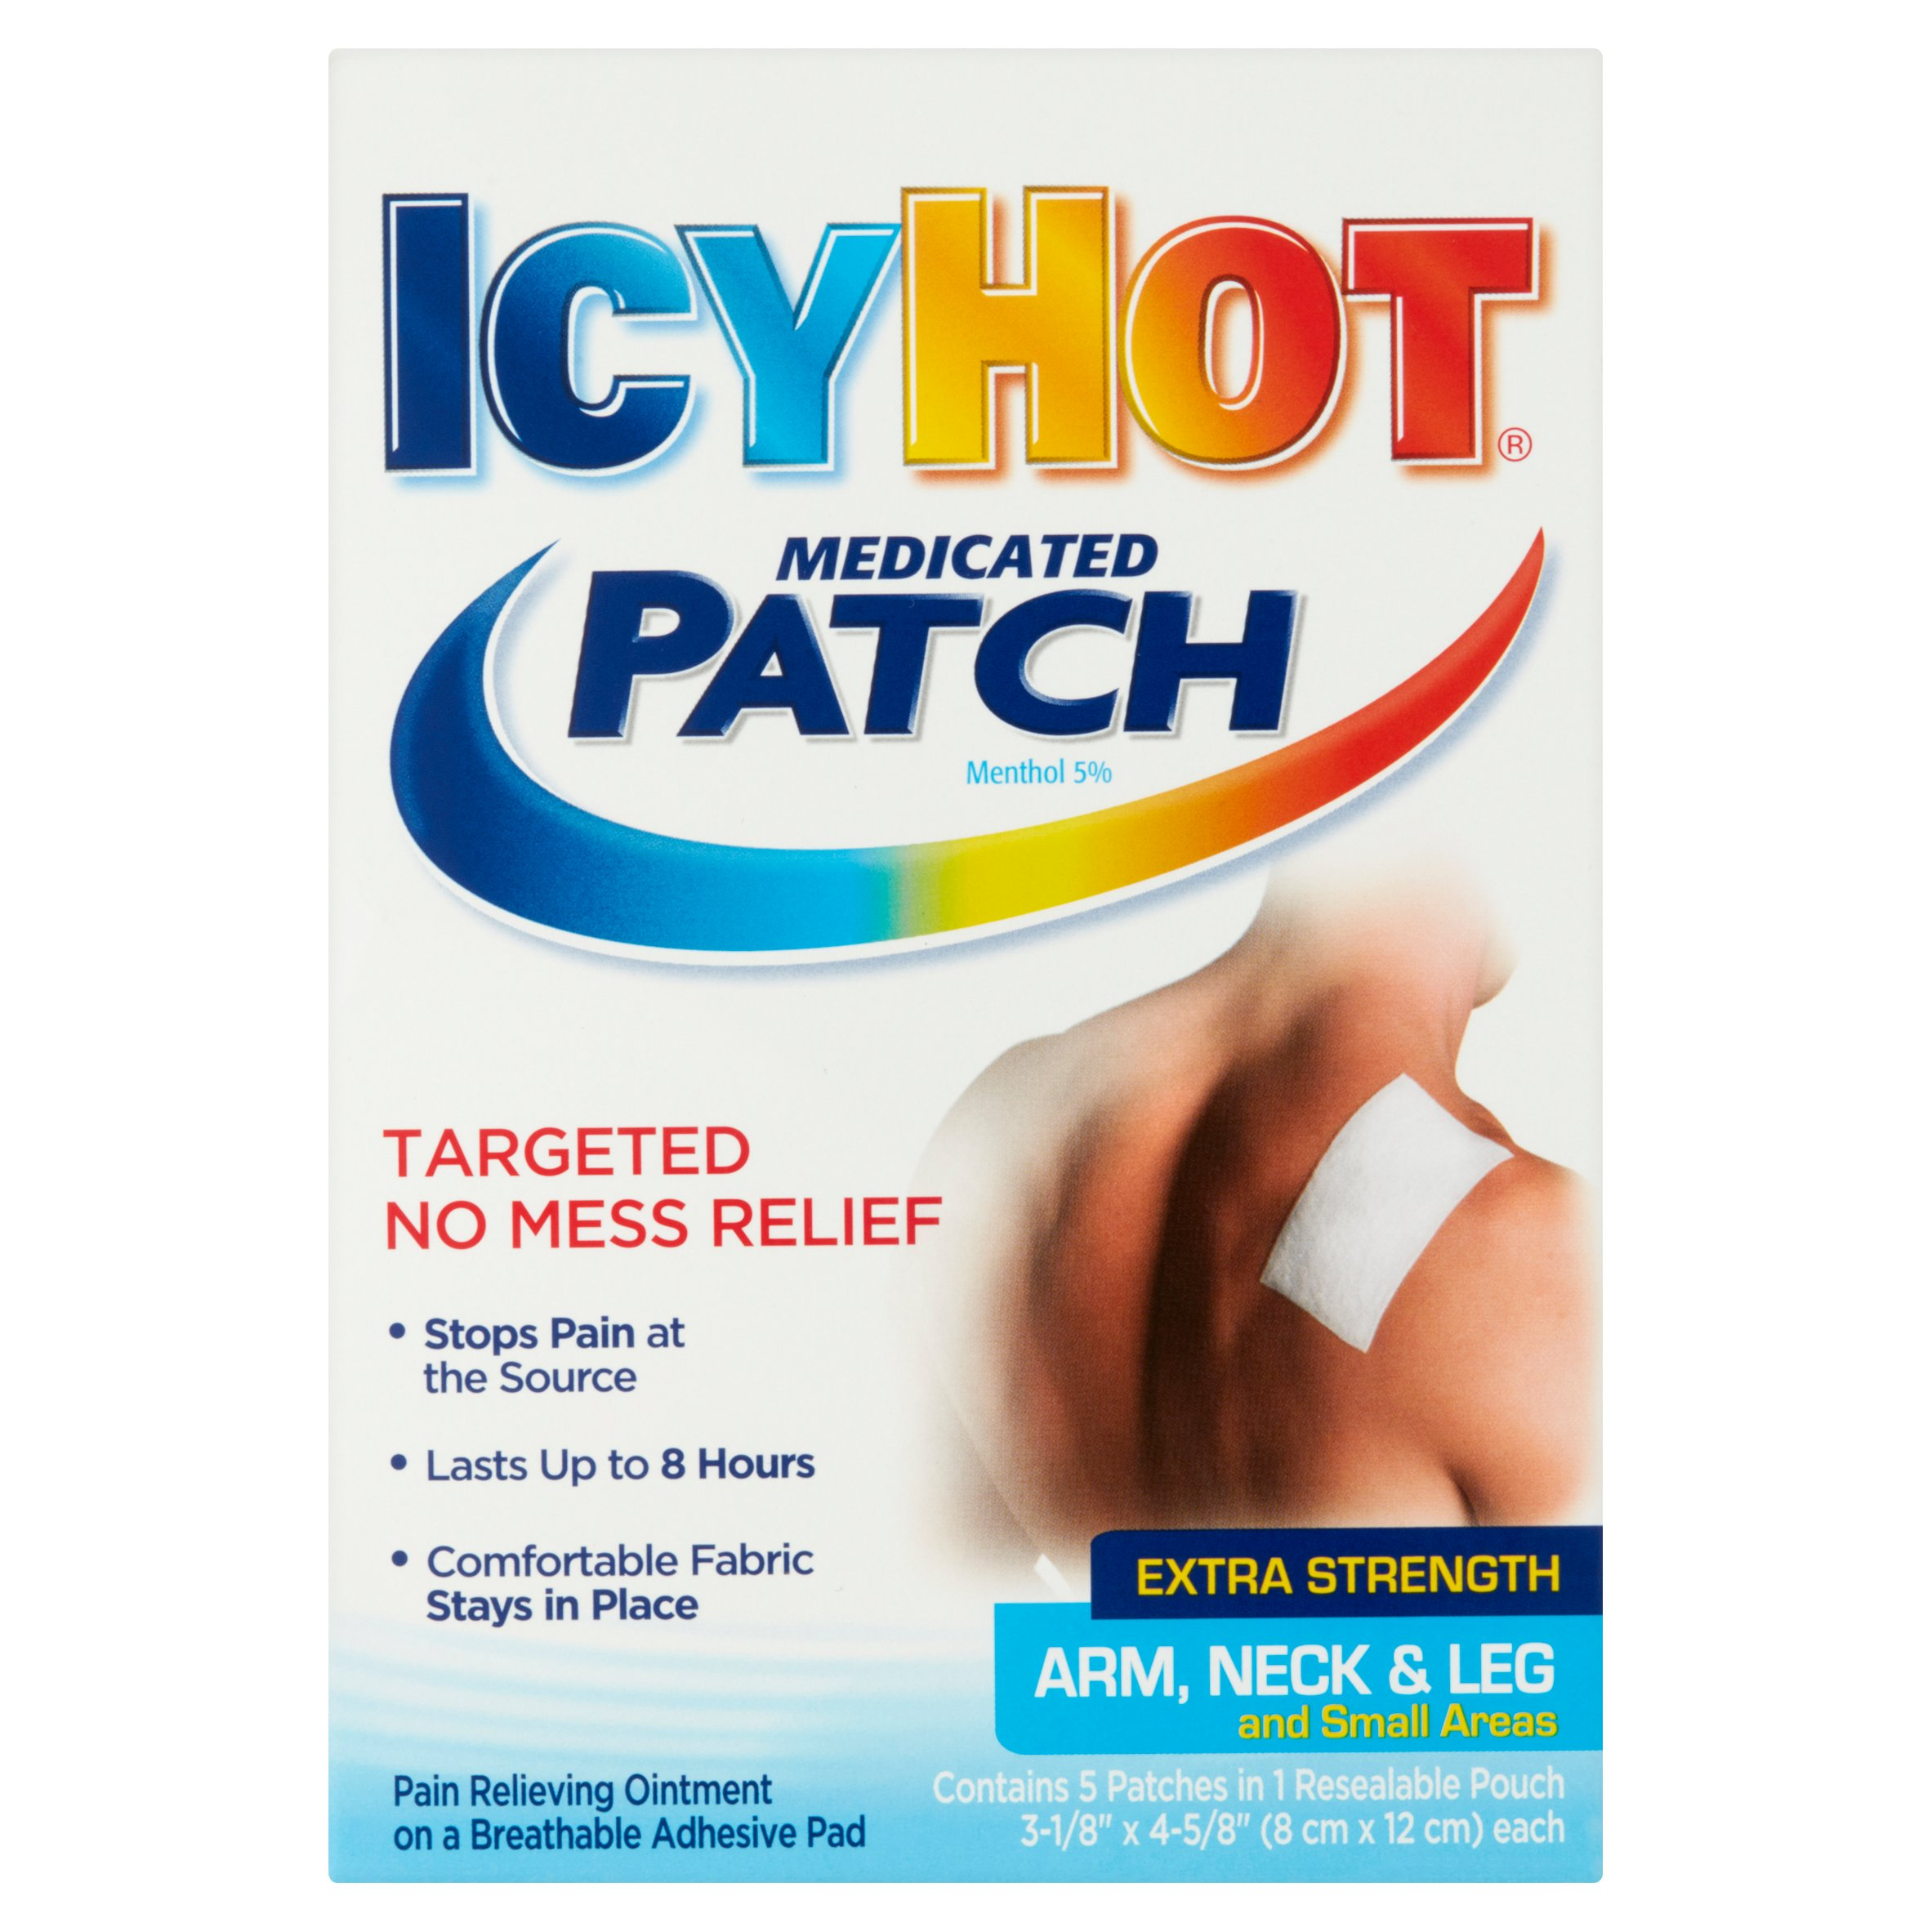 Icy Hot Extra Strength Arm, Neck & Leg and Small Areas Medicated Patch, 5 count